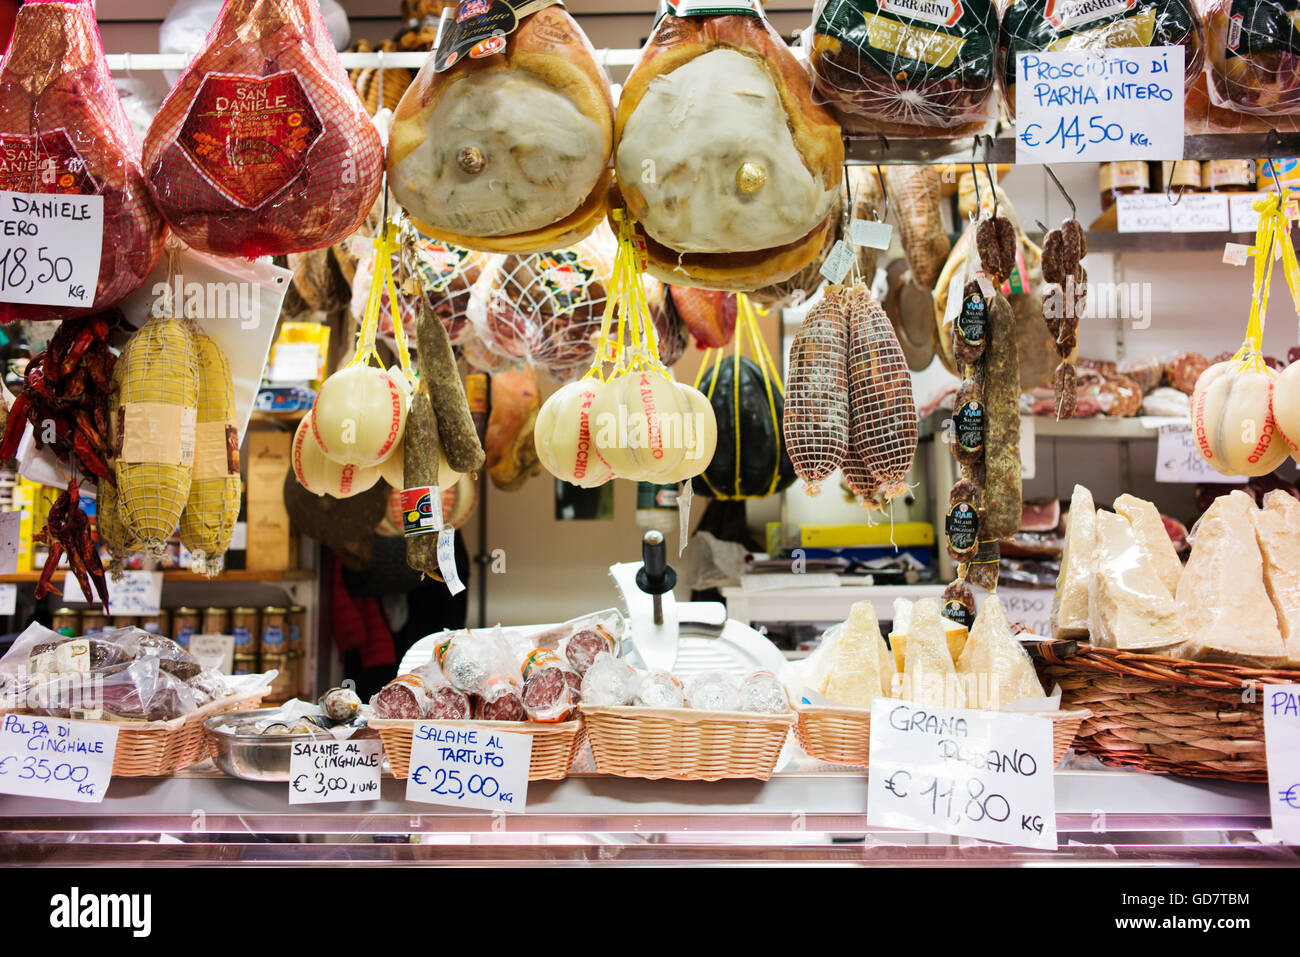 Cheeses and cured meats in Florence's Central Market. - Stock Image